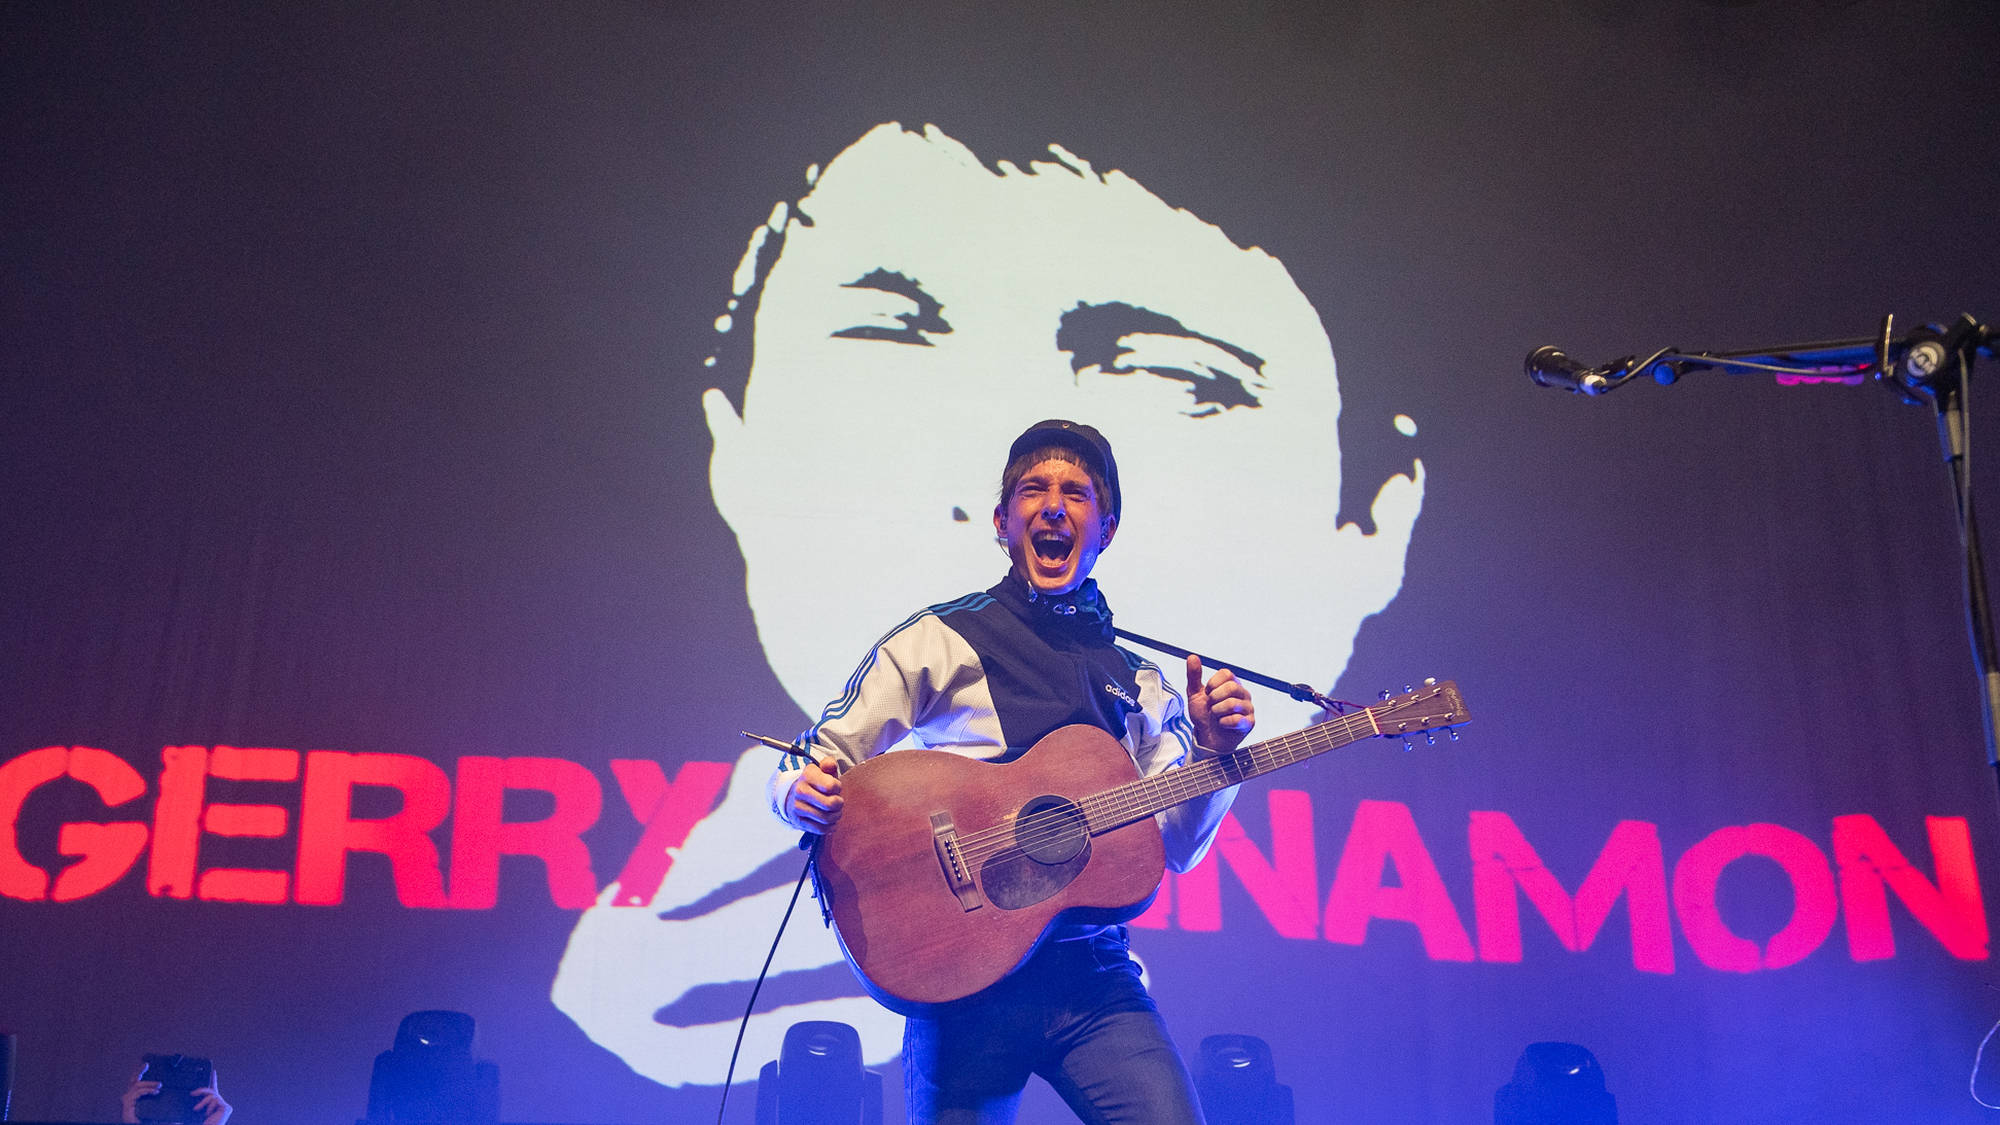 Gerry Cinnamon releases limited production tickets for sold out 2019 UK tour dates